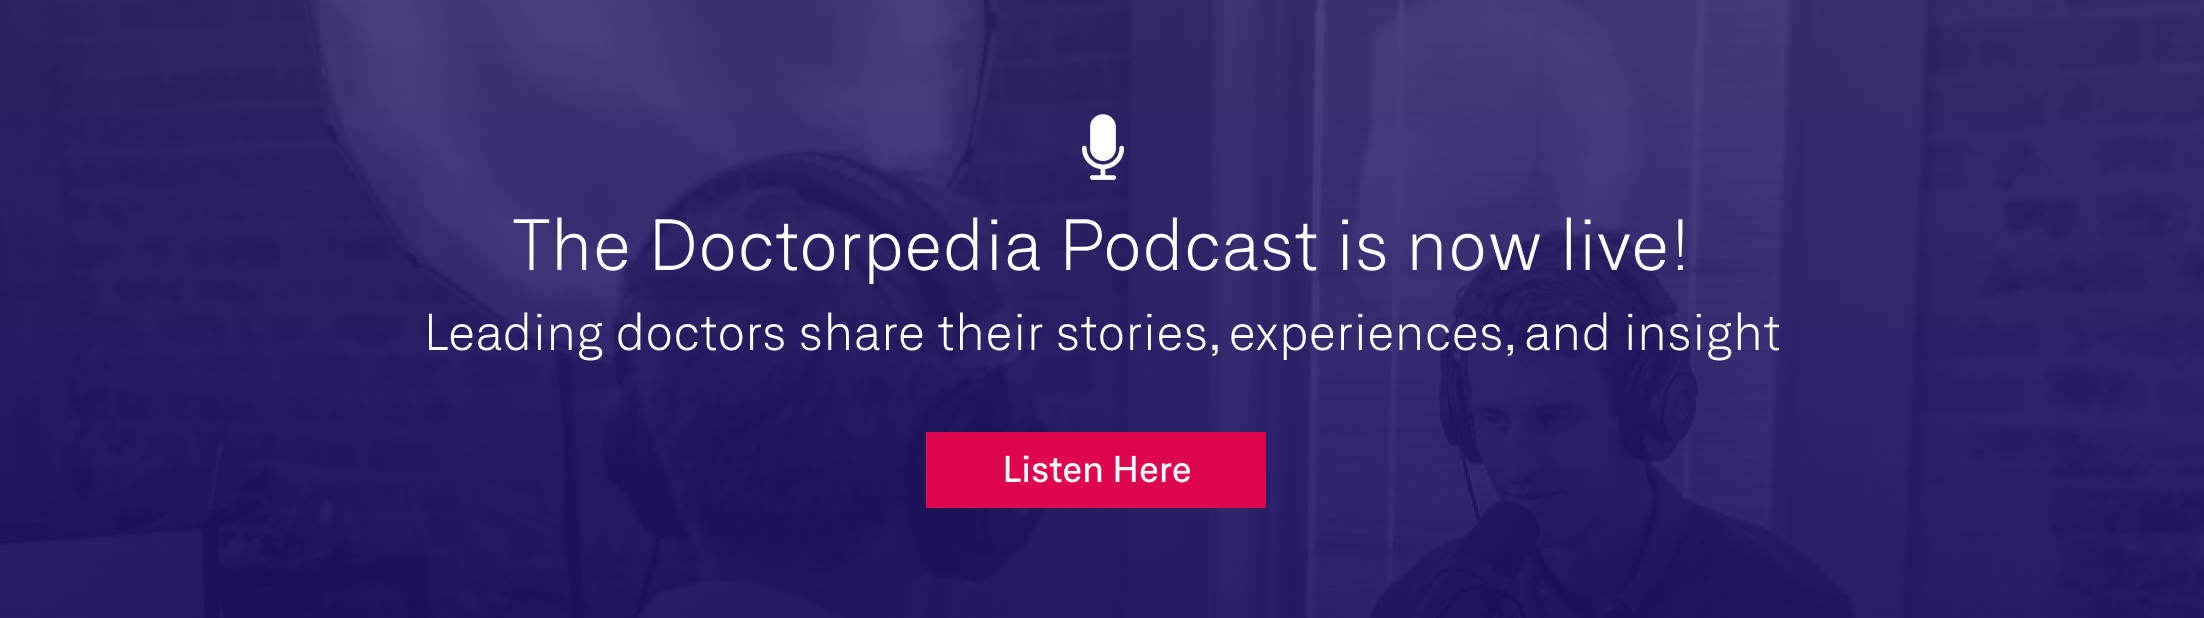 Doctorpedia Podcast